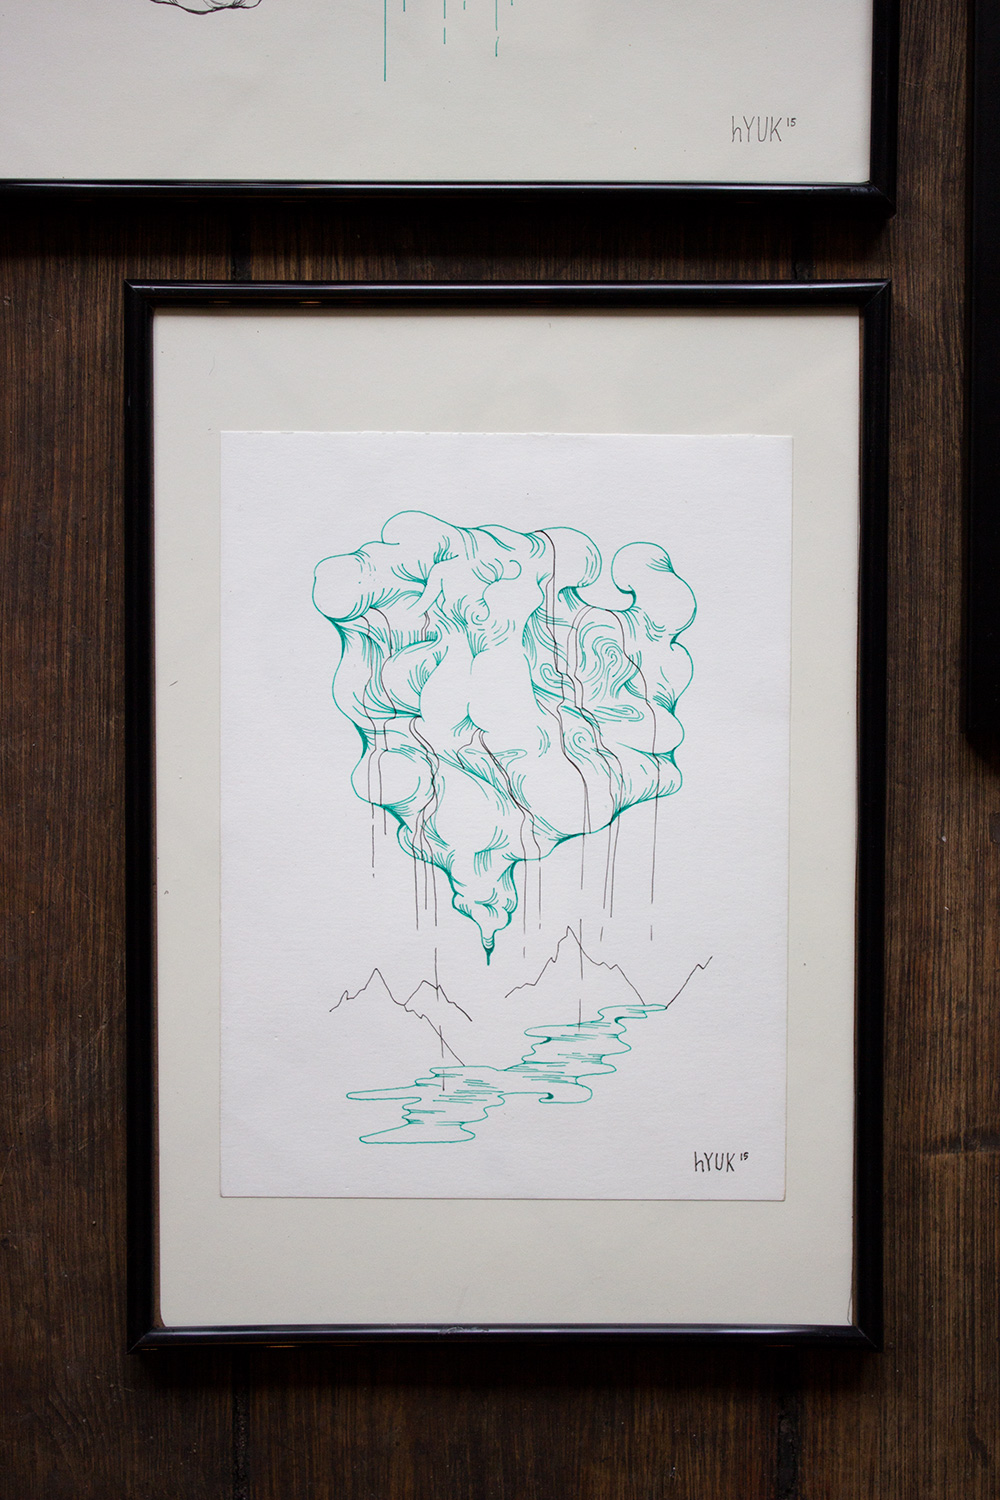 drawings, aesthetic, figurative, landscape, bodies, nature, sexuality, black, green, white, artliner, paper, abstract-forms, contemporary-art, danish, design, erotic, interior, interior-design, modern, modern-art, nordic, nude, scandinavien, scenery, sexual, Buy original high quality art. Paintings, drawings, limited edition prints & posters by talented artists.